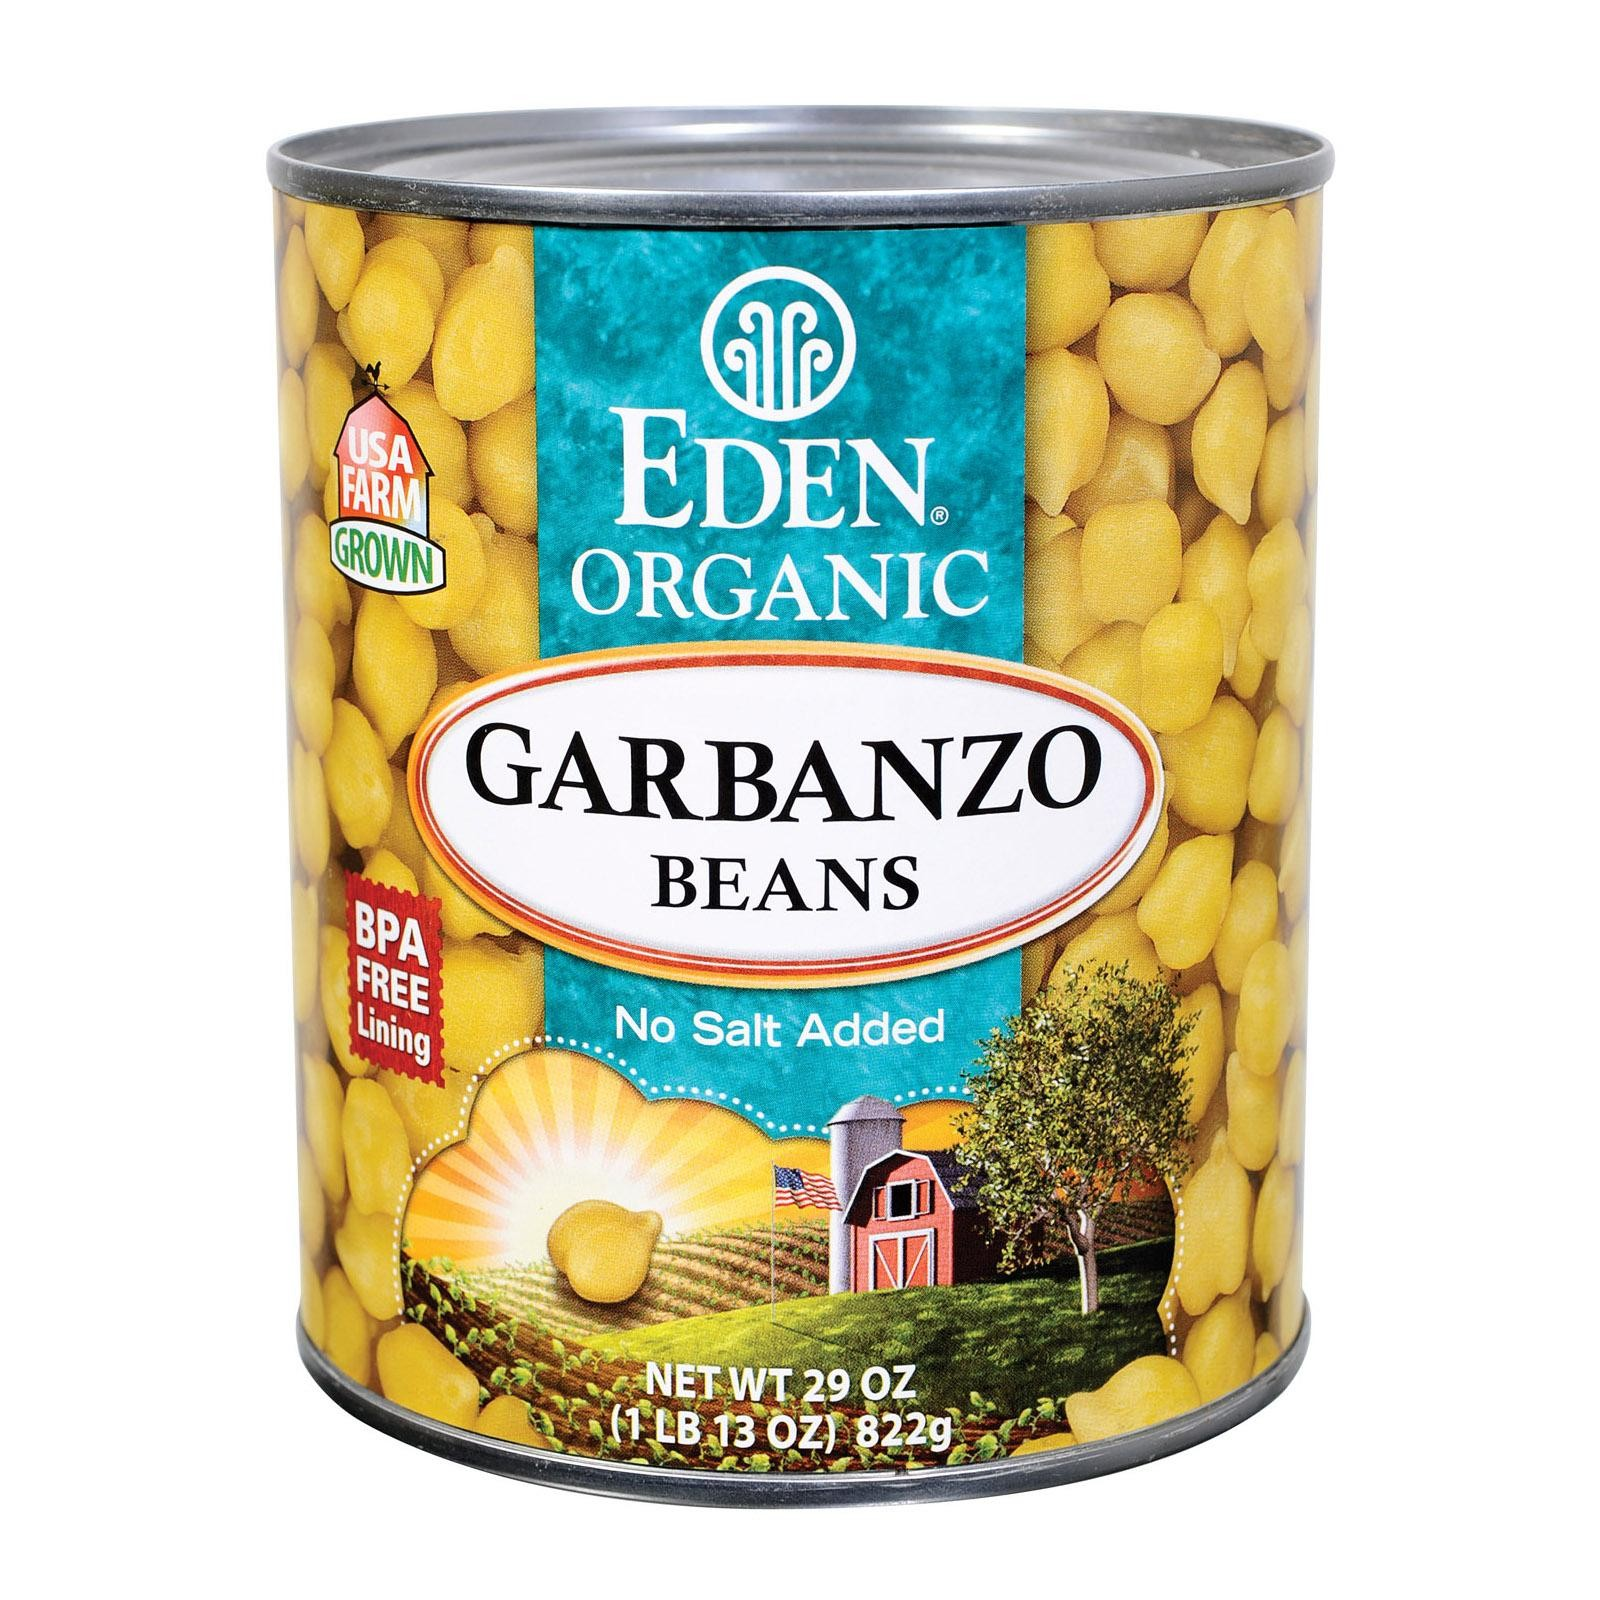 Eden Foods Organic Garbanzo Beans - Pack of 12 - 29 Oz.